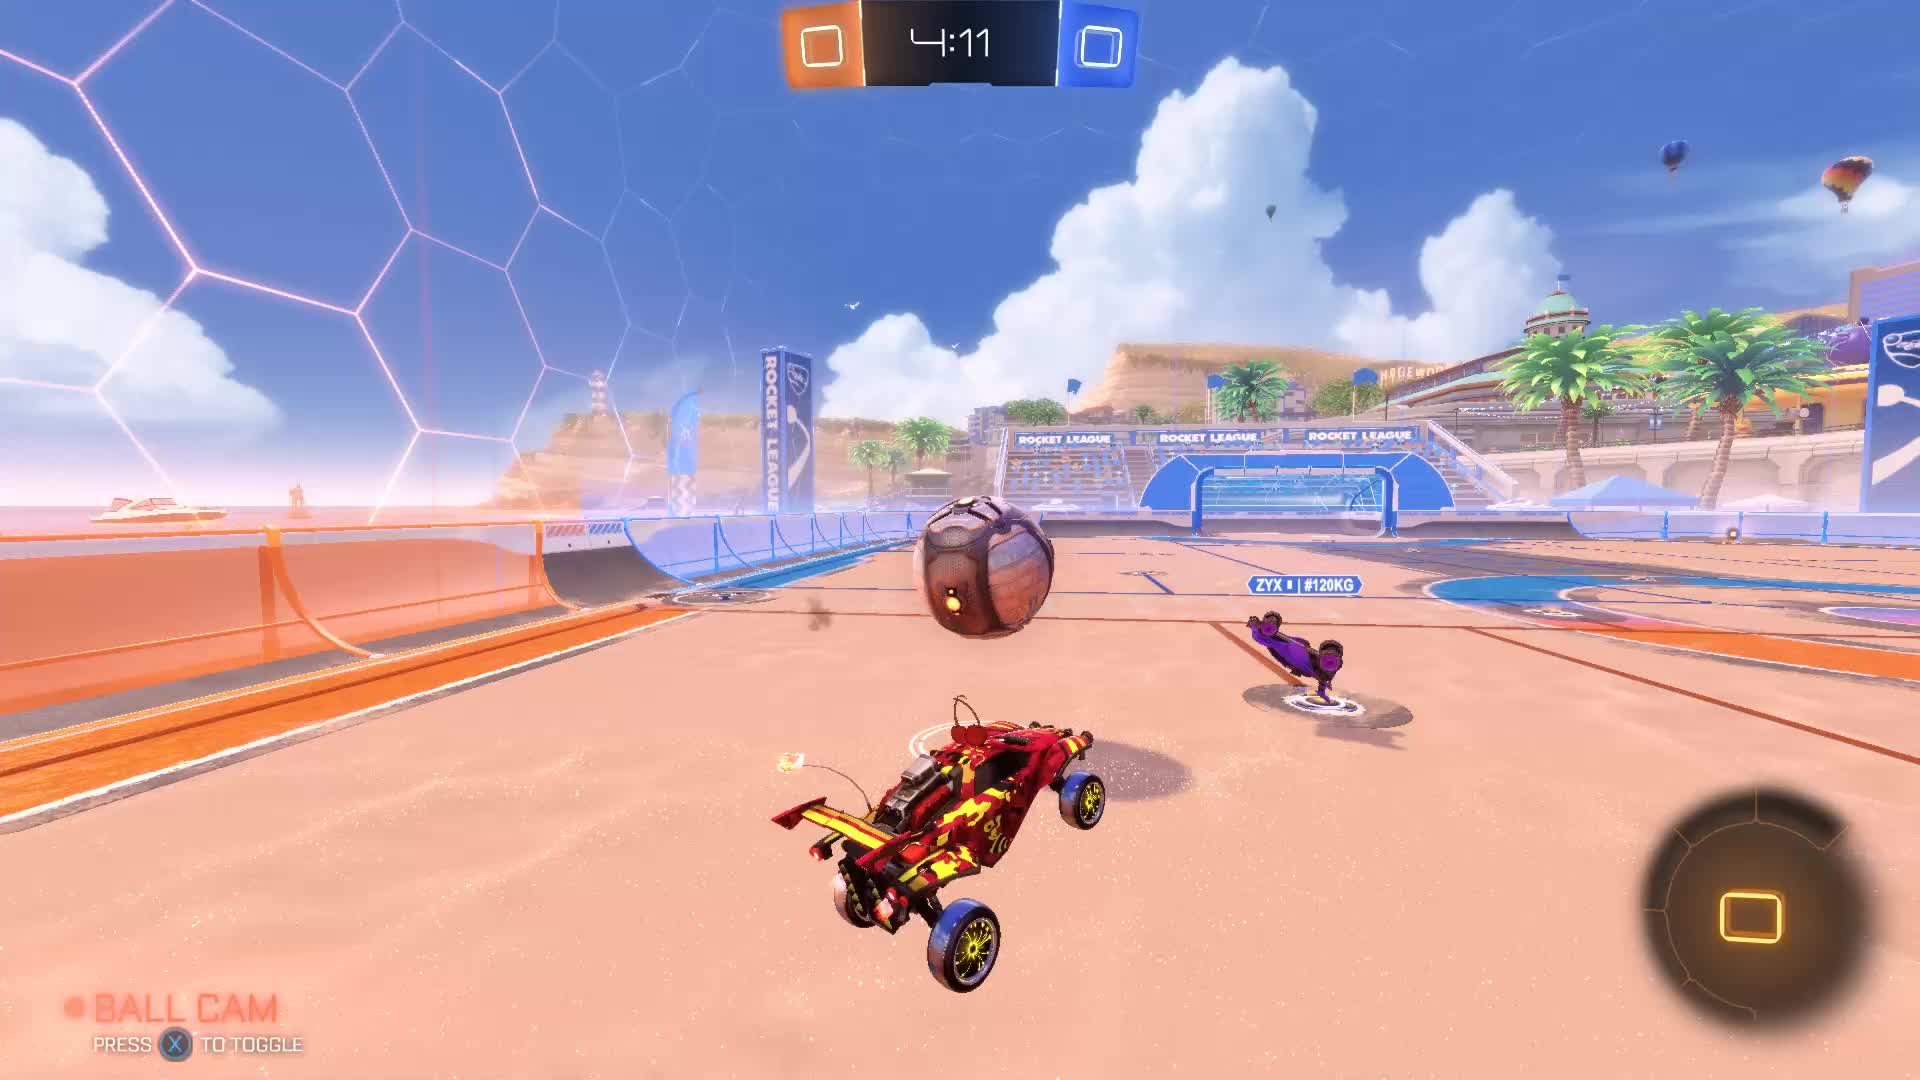 rocketleague, Rocket League | Friendly Demolition GIFs